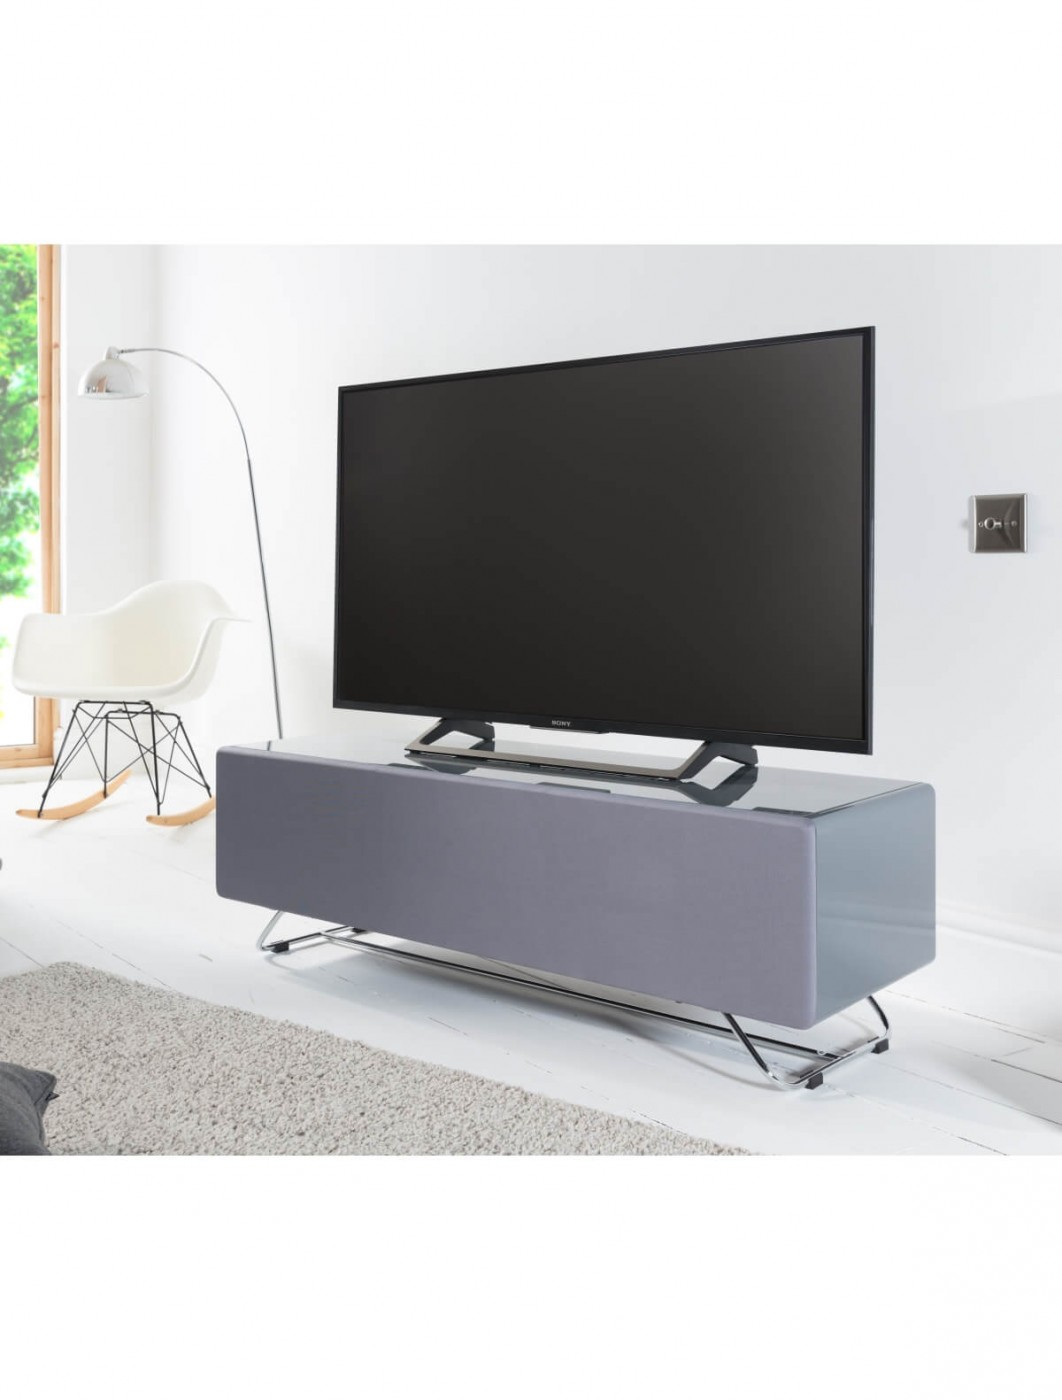 TV Stands - Chromium Concept 1200mm Grey TV Stand CRO2-1200CPT-GR